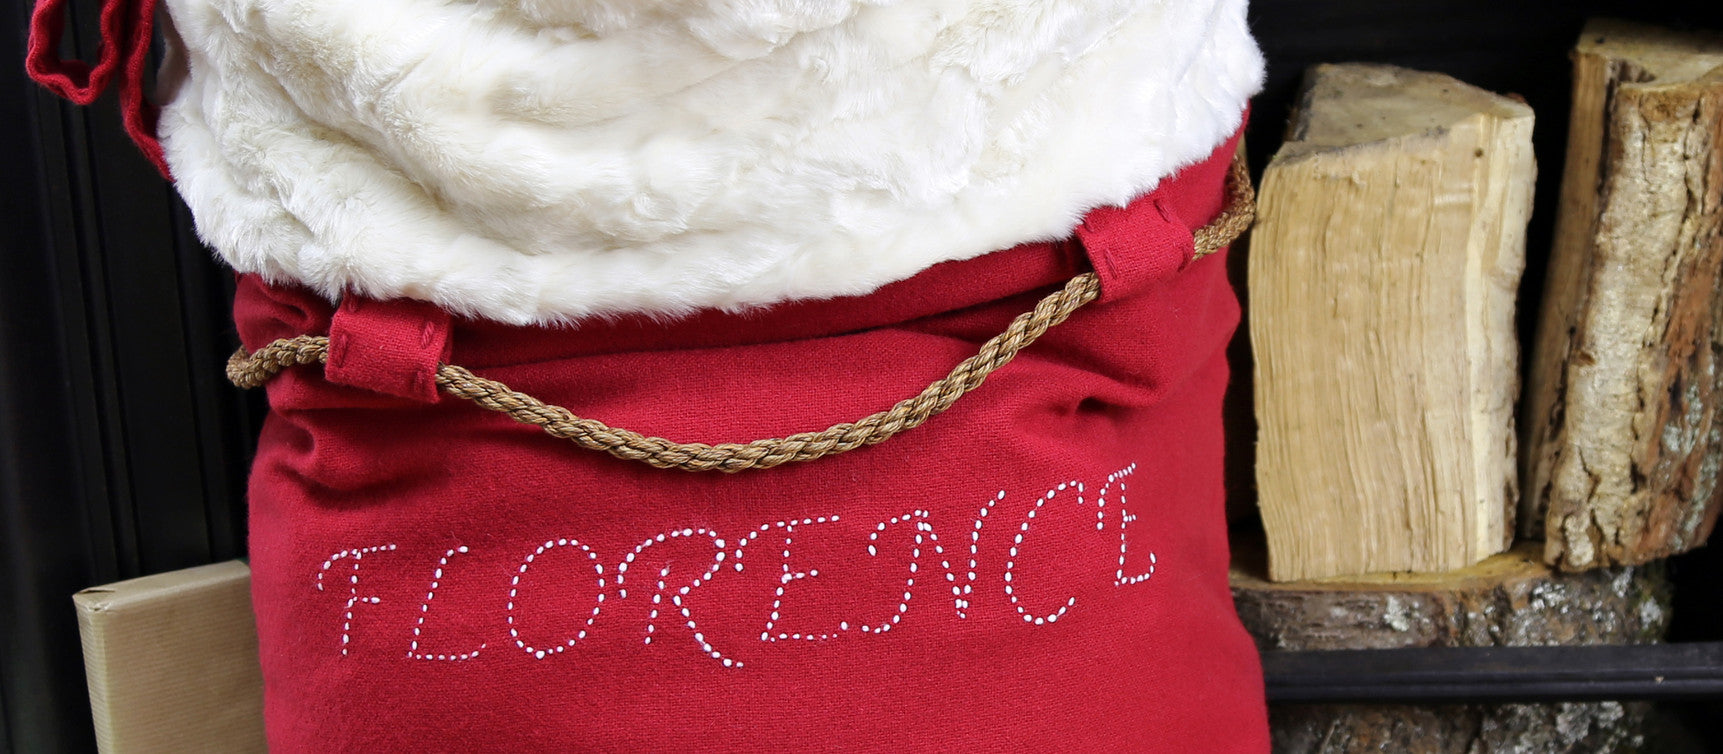 Personalised hand-stitched Santa sack made from luxury faux fur and soft merino wool